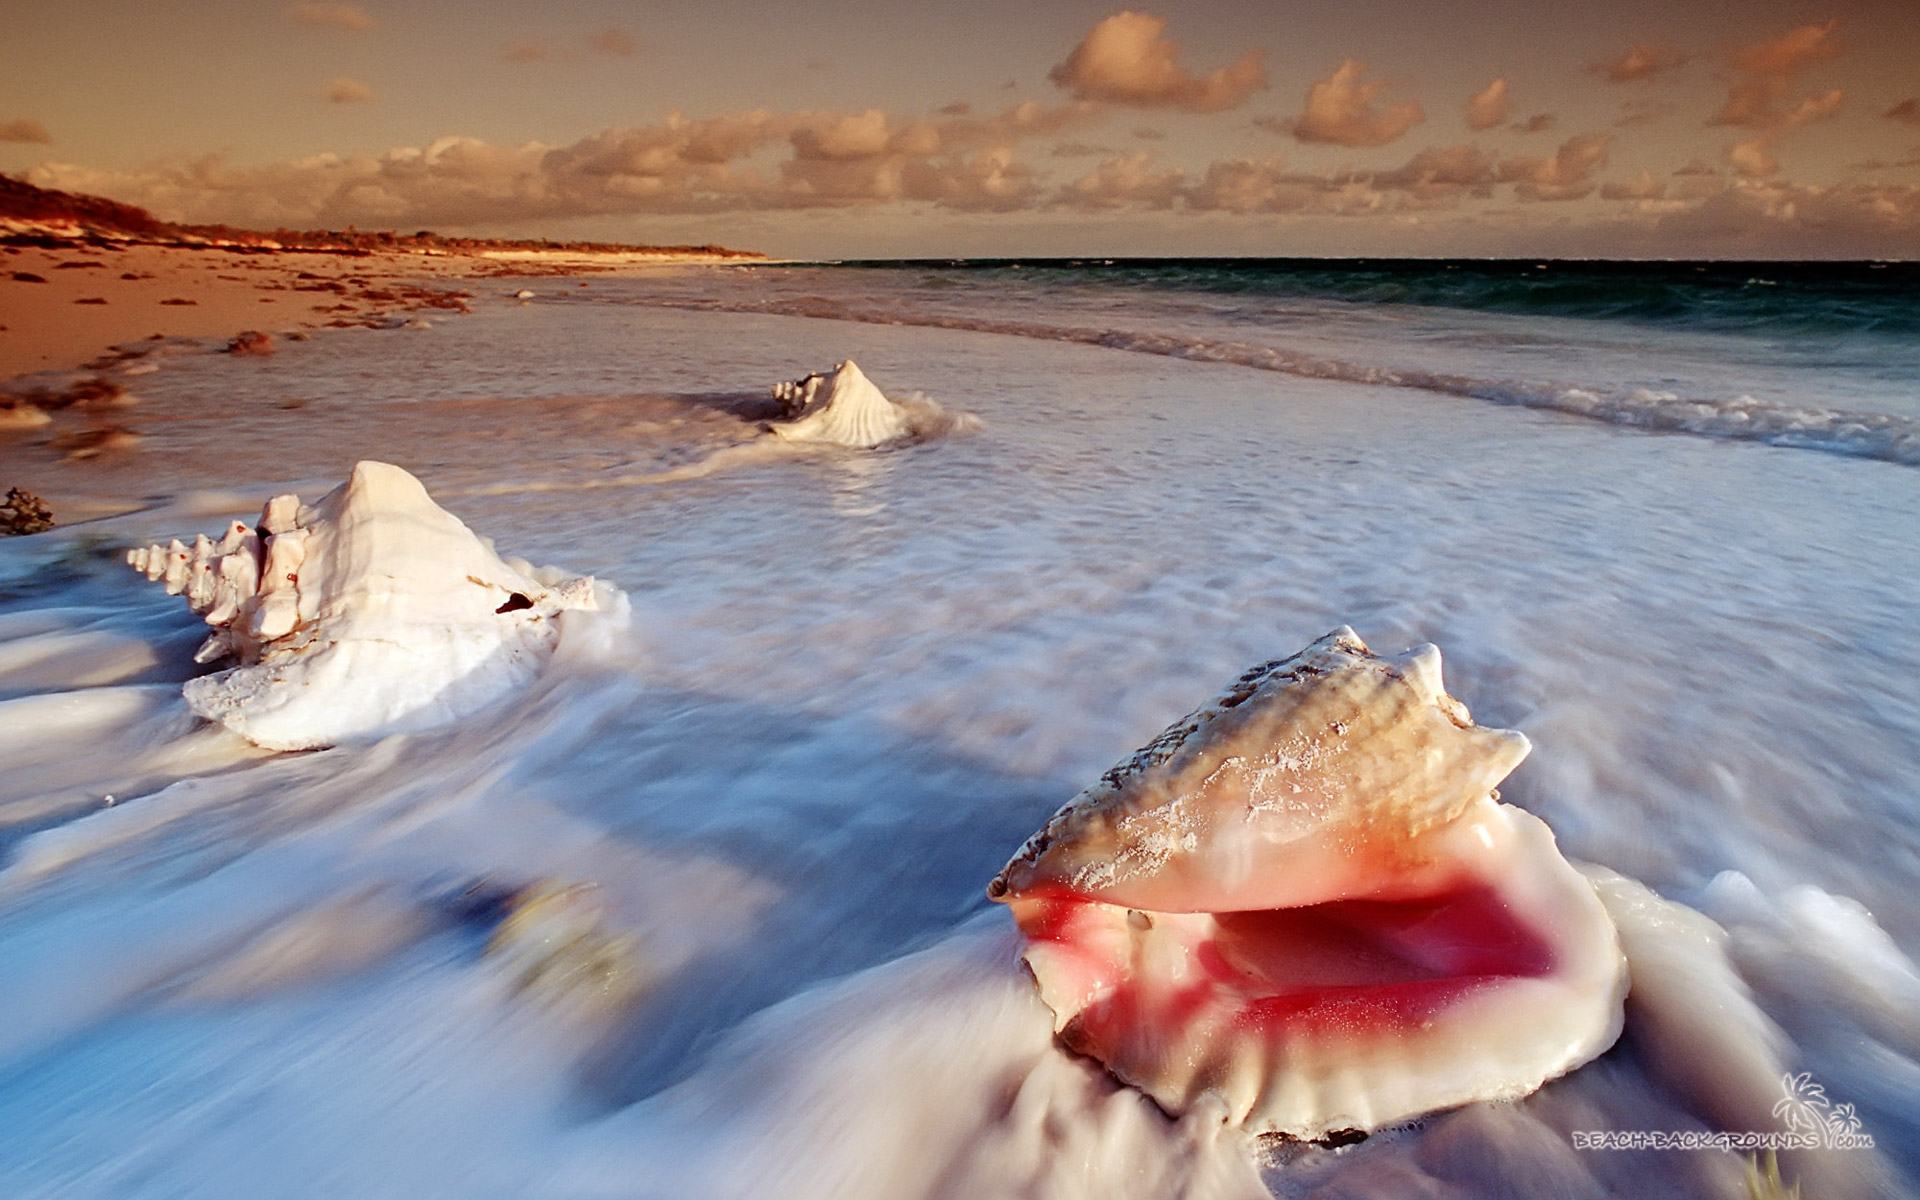 Conch shells at Cat Island. Exumas beach. Image credit not found. TravelSeeLove does not claim any rights to this image whatsoever.